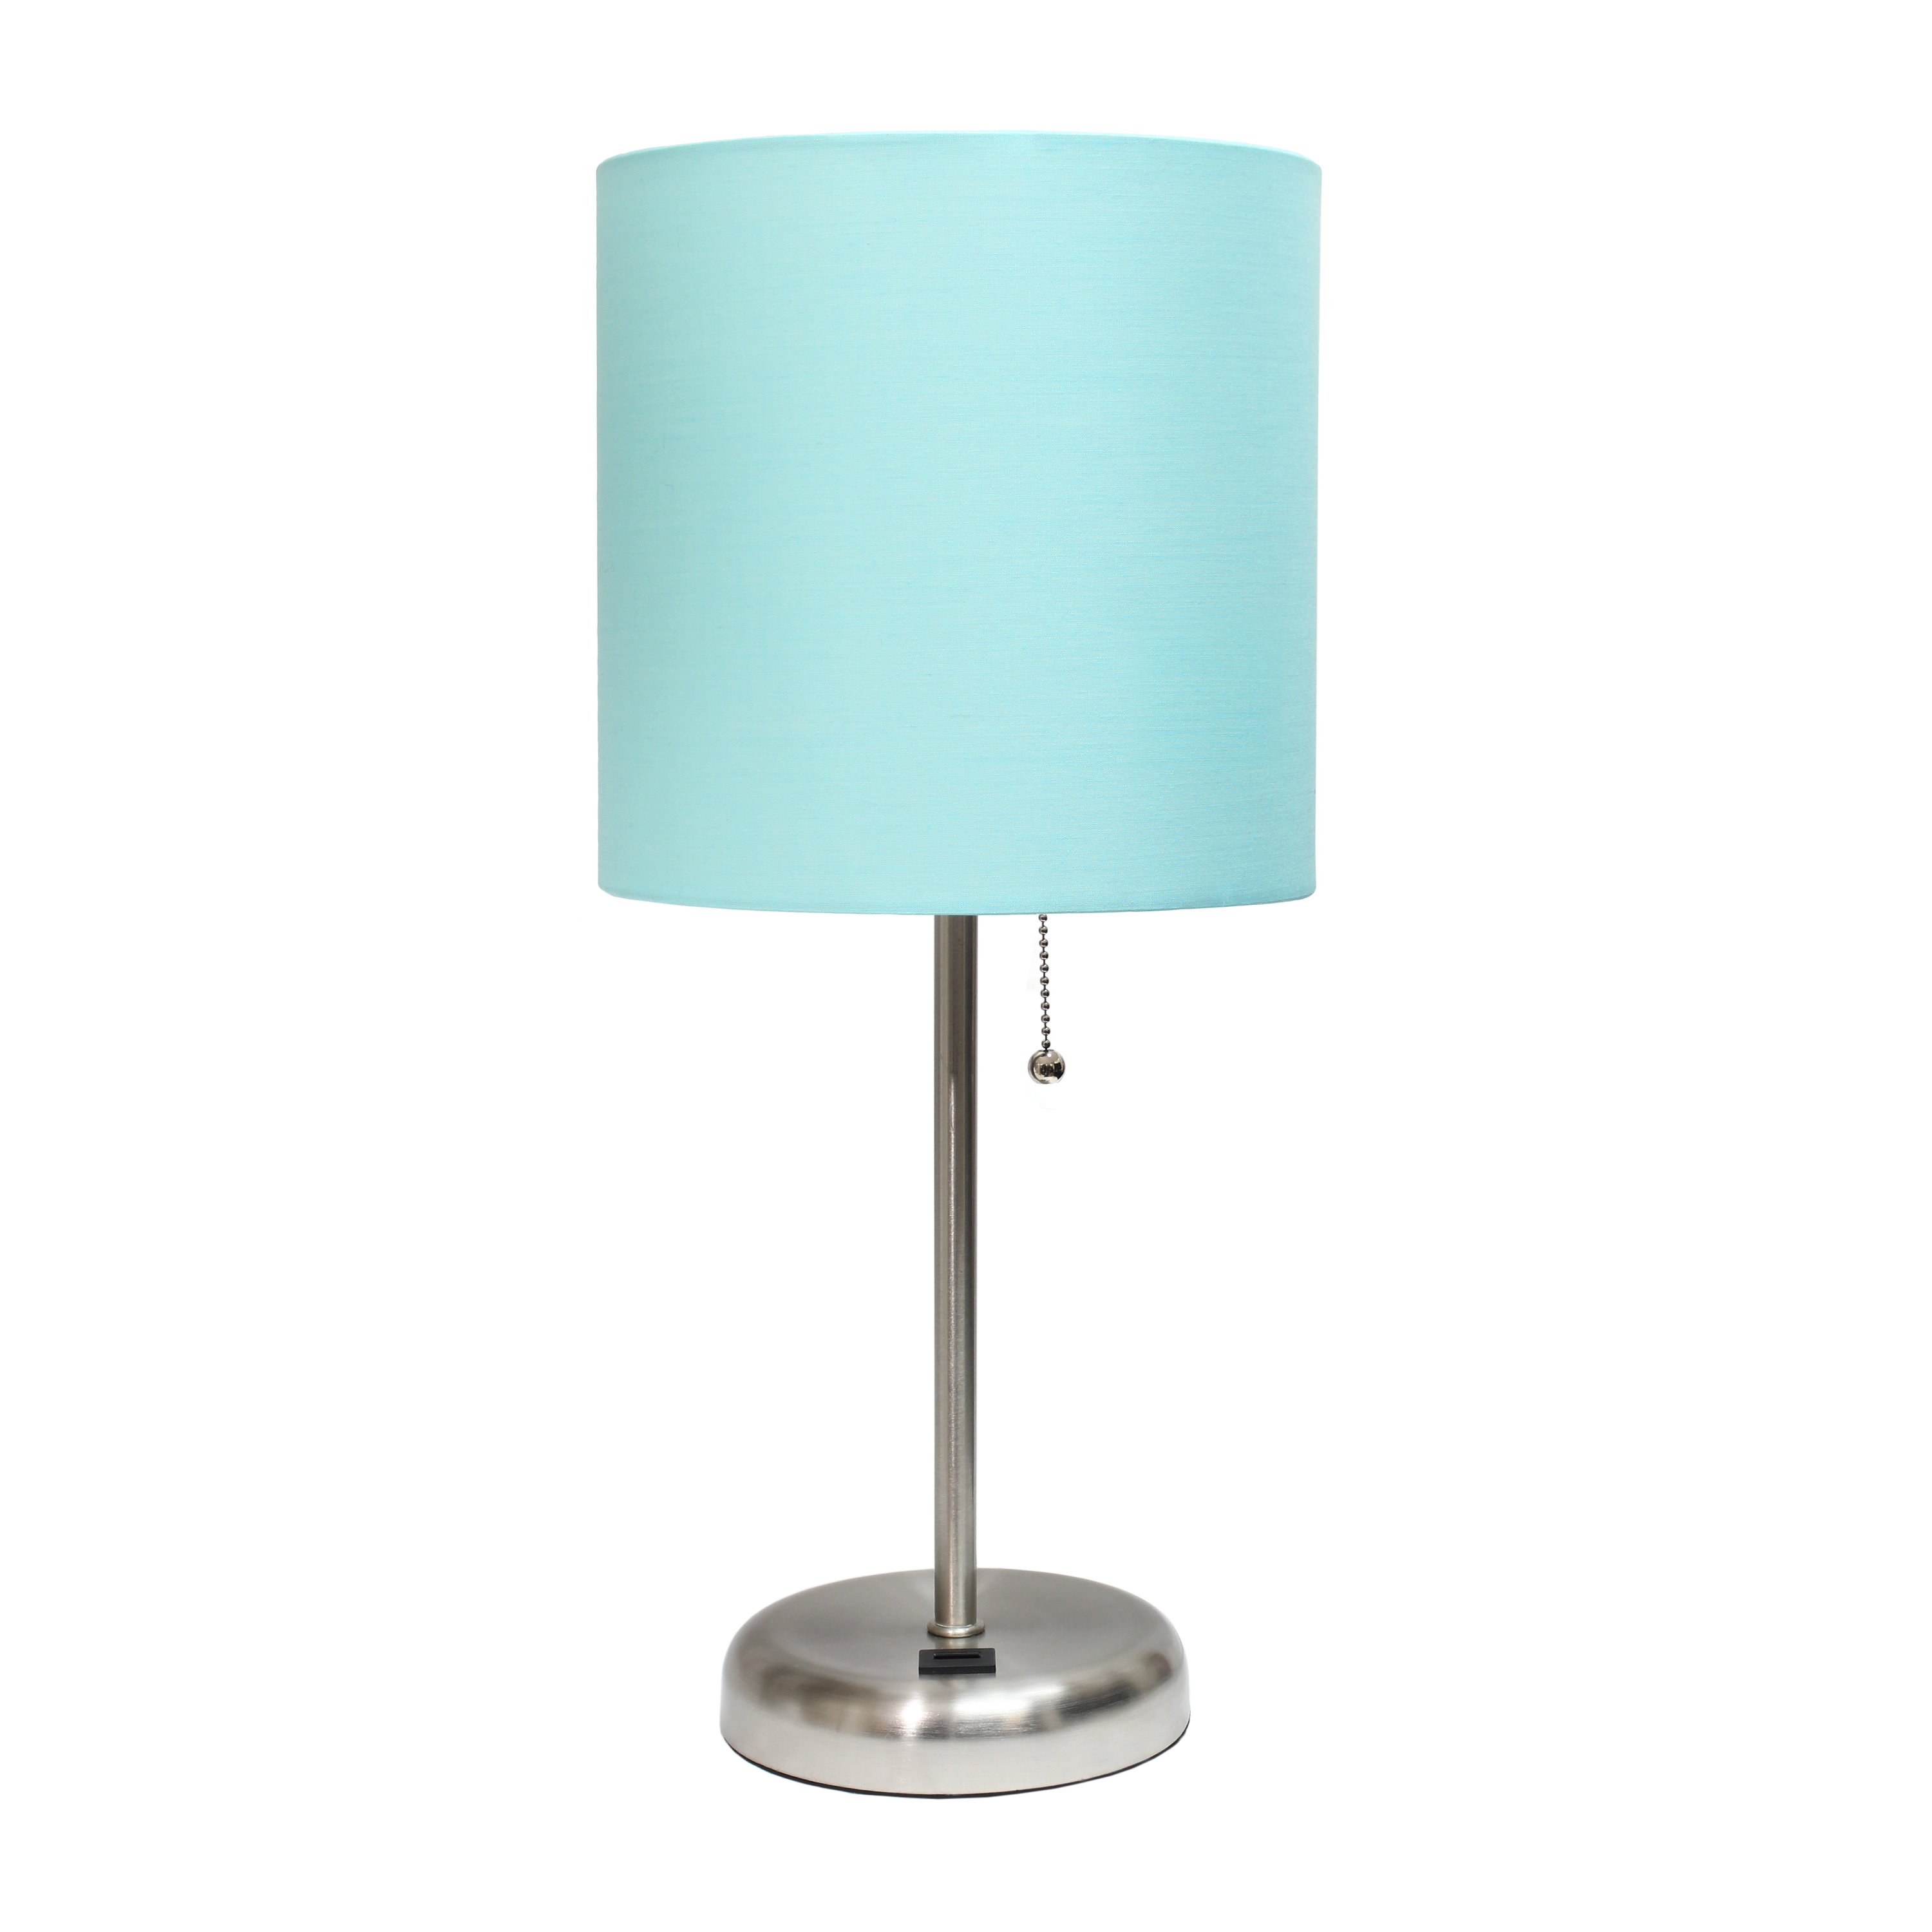 LimeLights Stick Lamp with USB port and Fabric Shade, Aqua